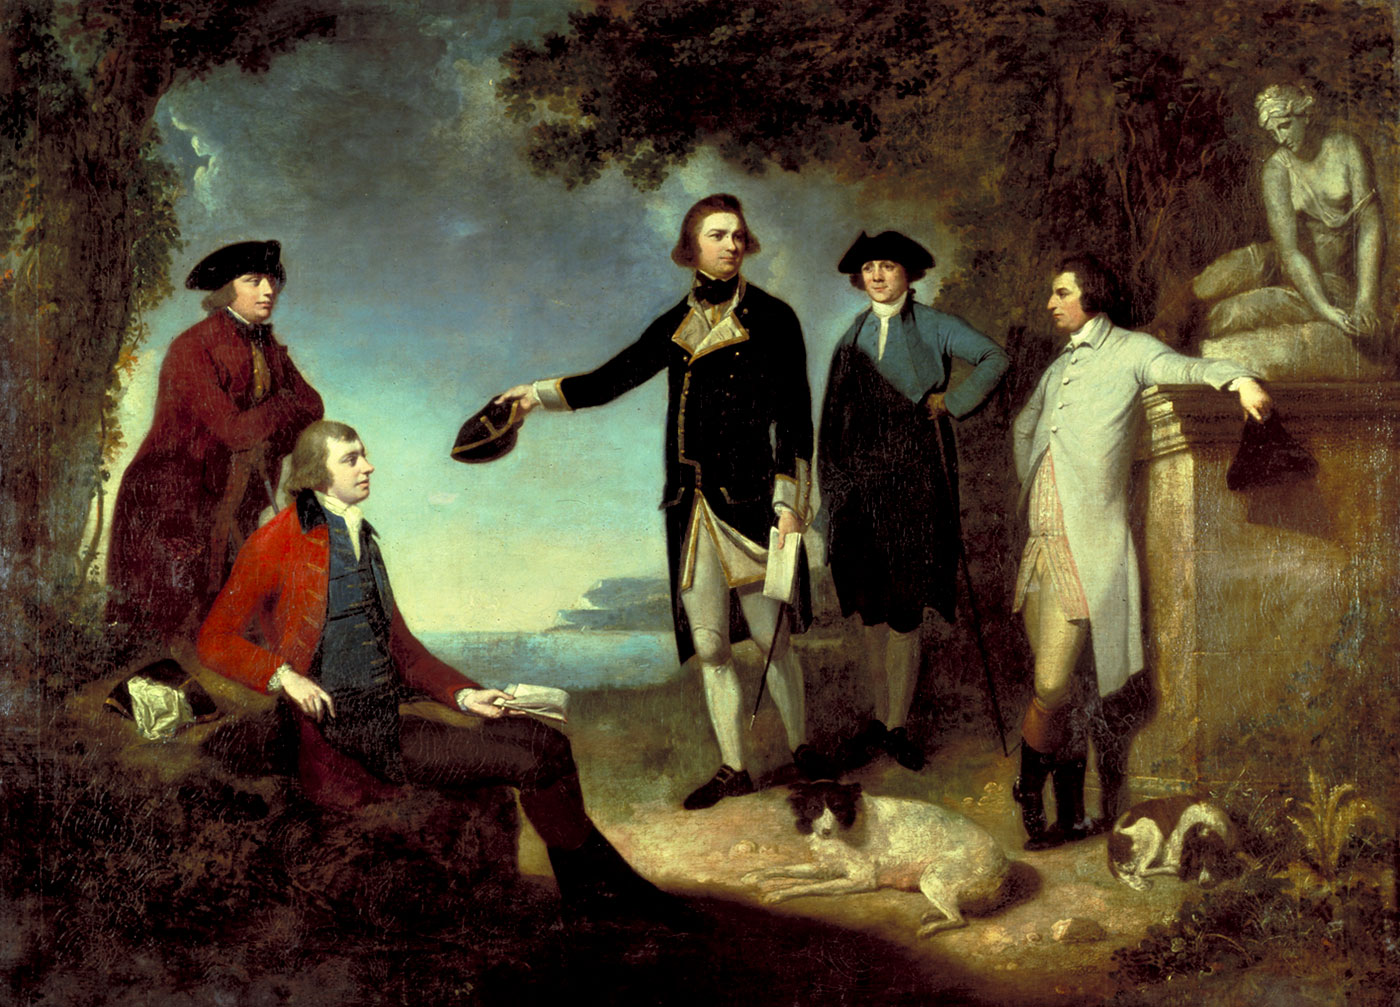 Oil painting showing five men in an Arcadian landscape, with a marble statue of a seated woman at right and two dogs lying at the men's feet. The man at centre gestures towards a bay.